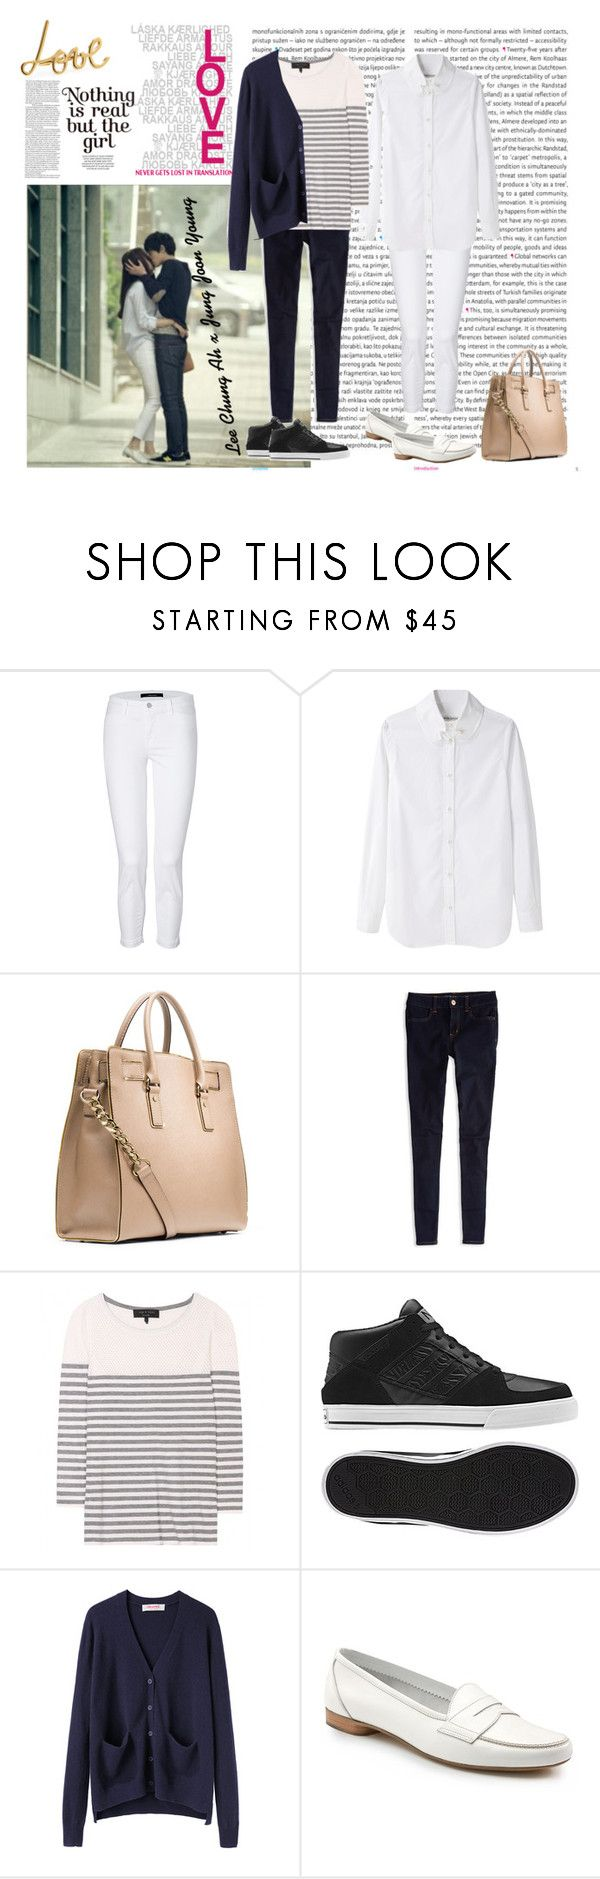 """""""Jung Joon Young x Lee Chung Ah"""" by gaksitaaaaall ❤ liked on Polyvore featuring Oris, J Brand, Tsumori Chisato, MICHAEL Michael Kors, American Eagle Outfitters, rag & bone, adidas, Organic by John Patrick, Brooks Brothers and Lanvin"""